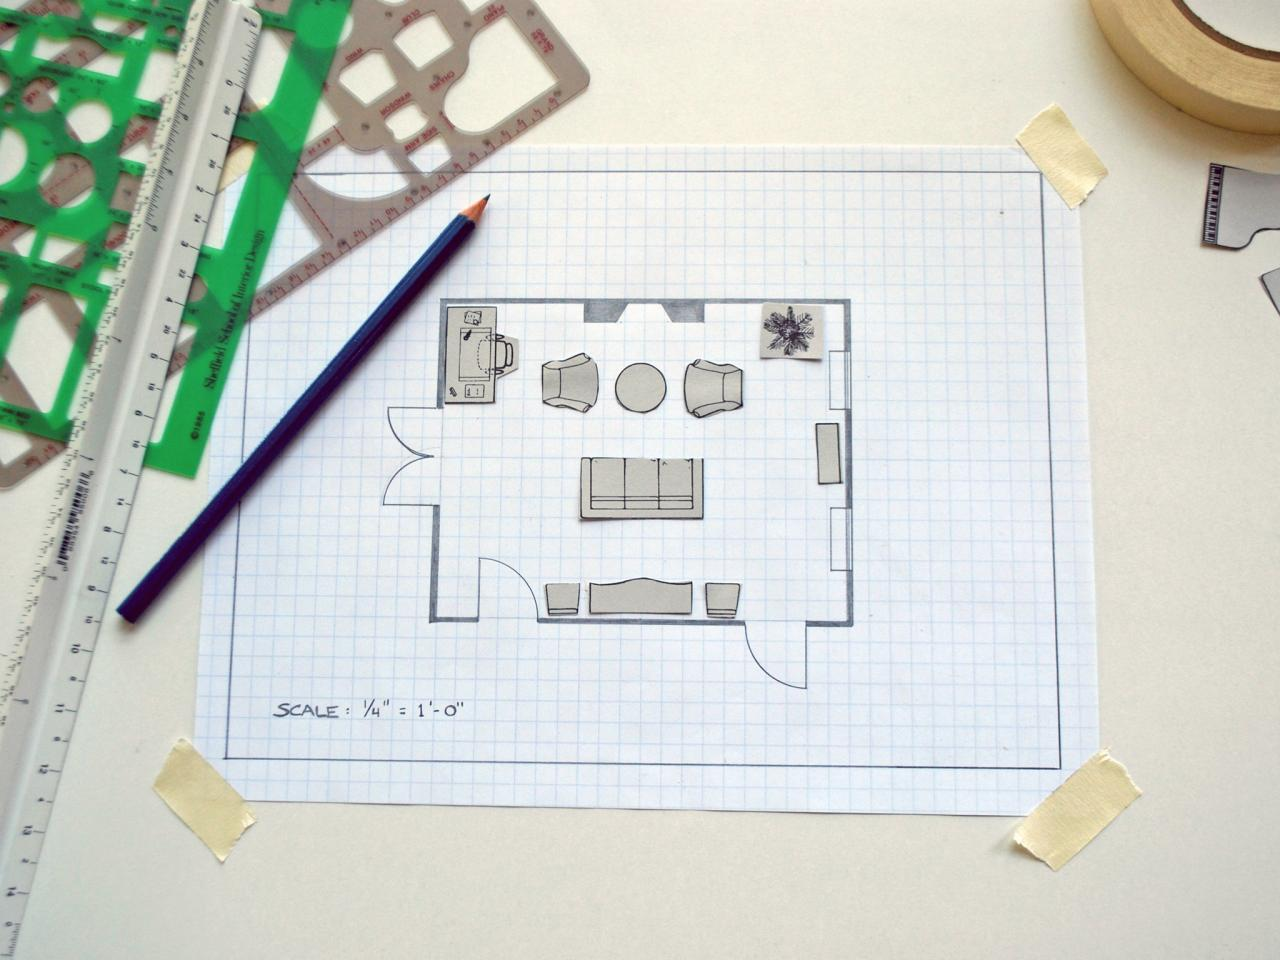 How To Create A Floor Plan And Furniture Layout | HGTV